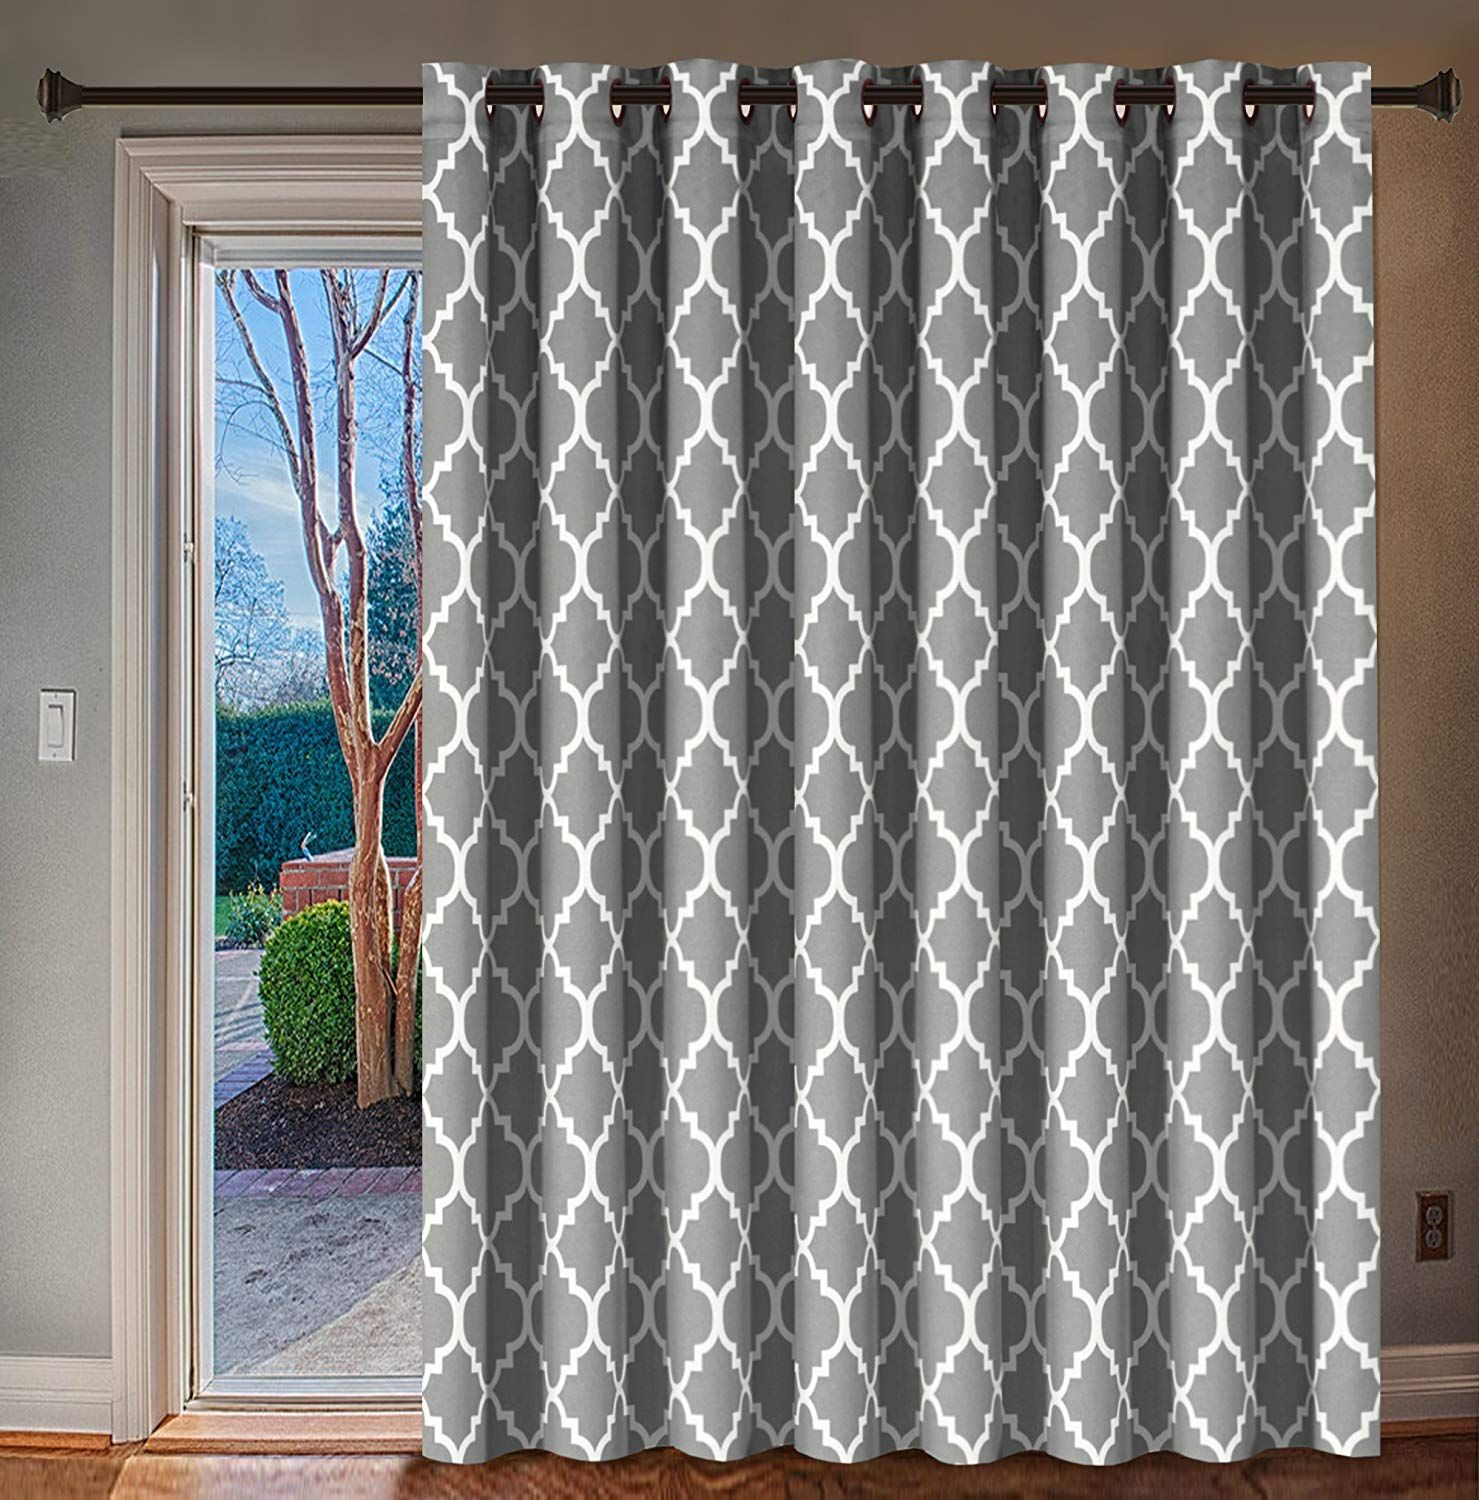 H Versailtex Blackout Printed Curtains Extra Long And Wide Thermal